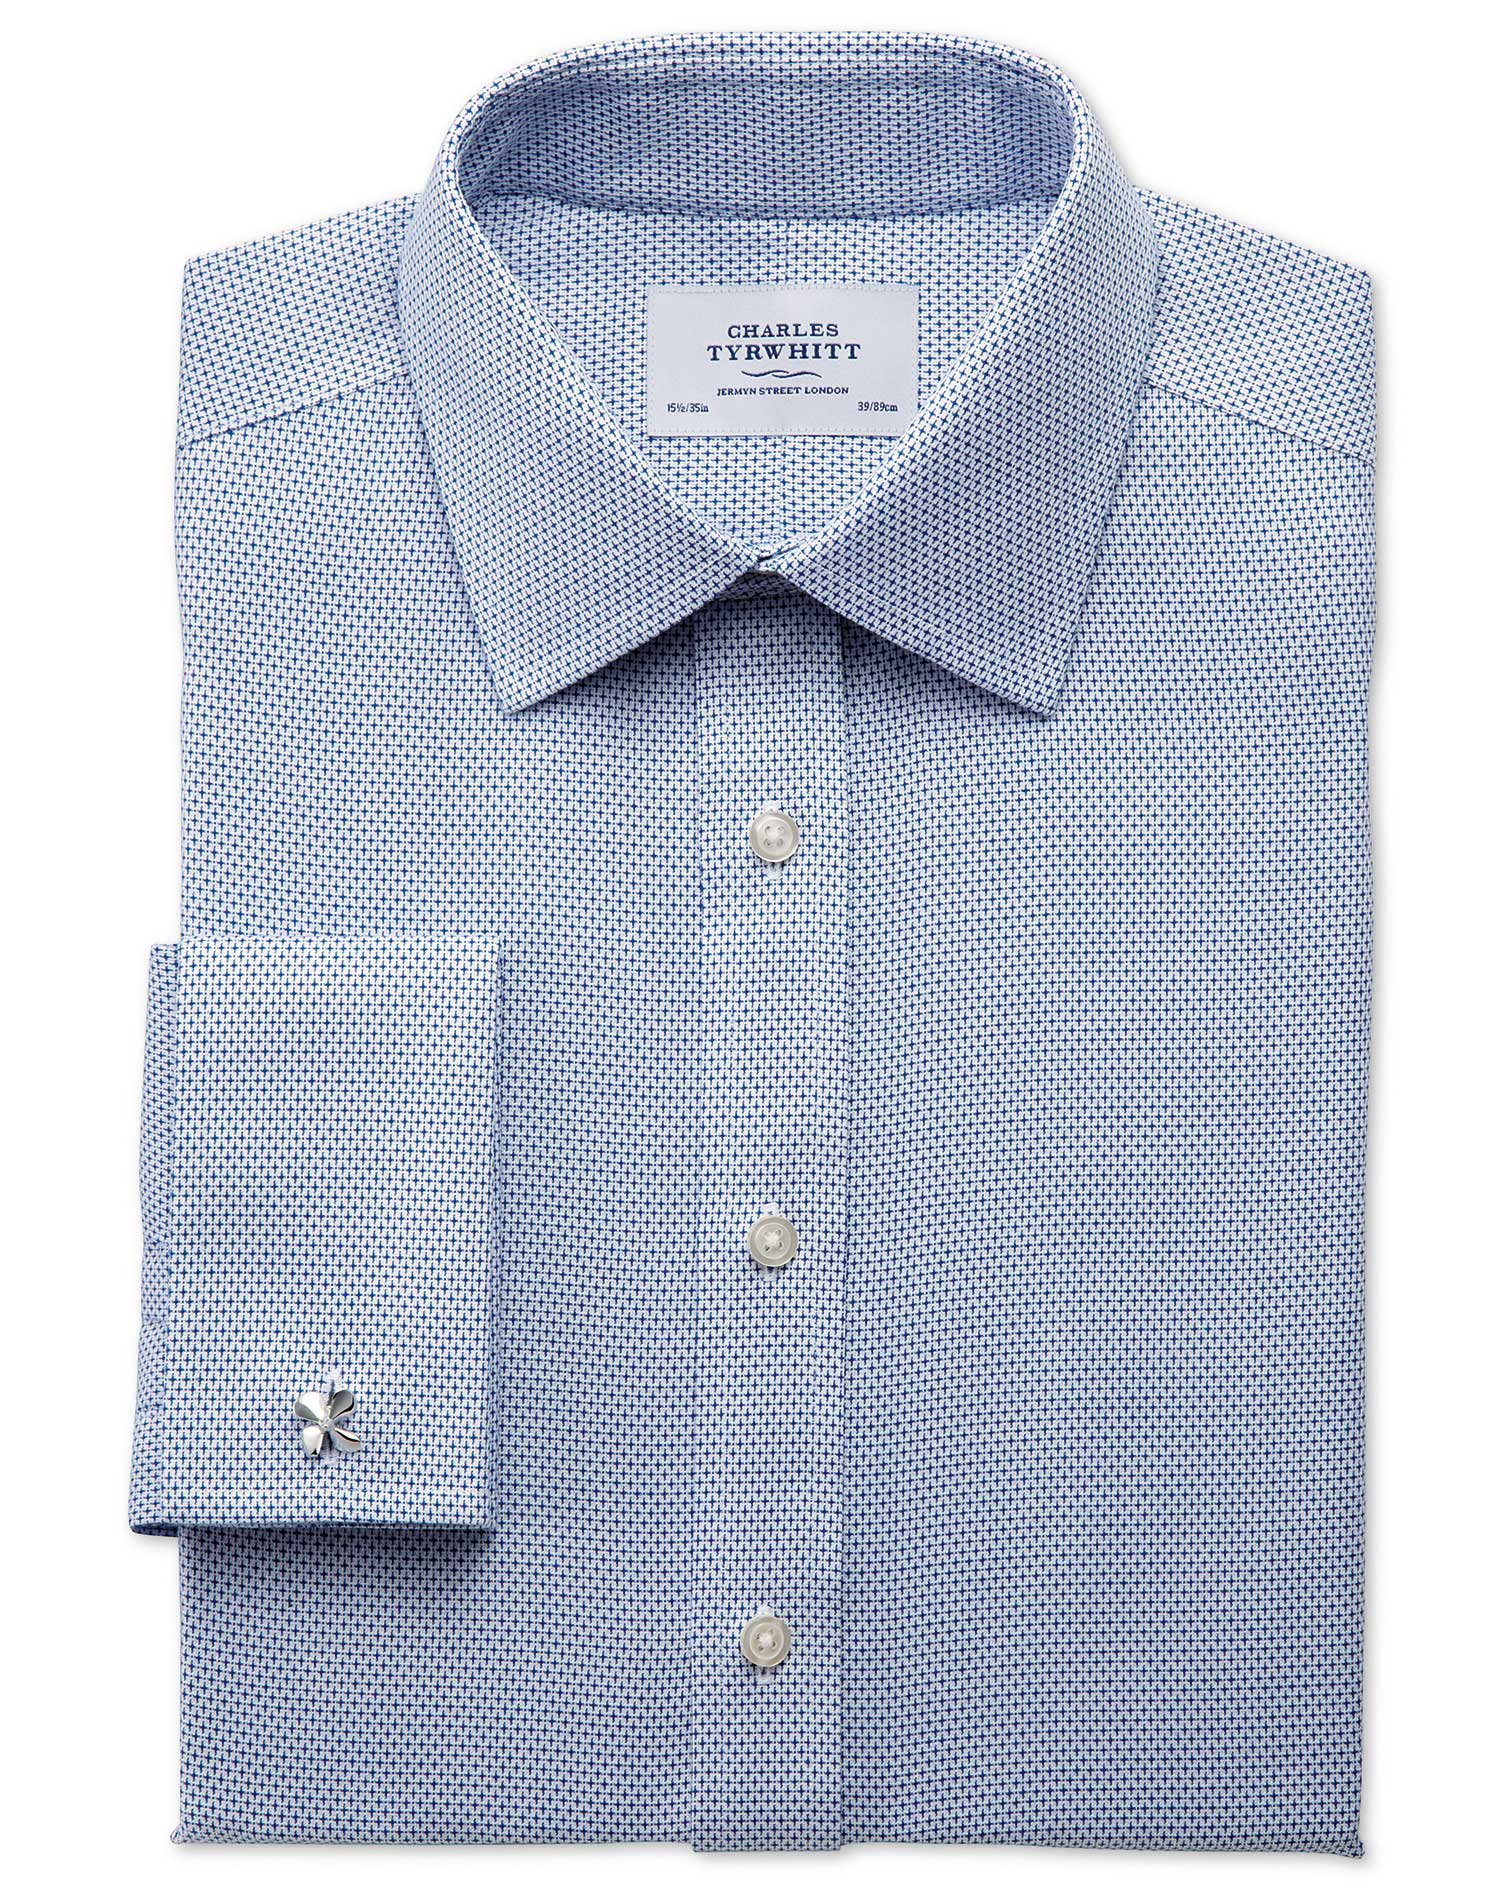 Slim Fit Non-Iron Imperial Weave Blue Cotton Formal Shirt Double Cuff Size 15/34 by Charles Tyrwhitt